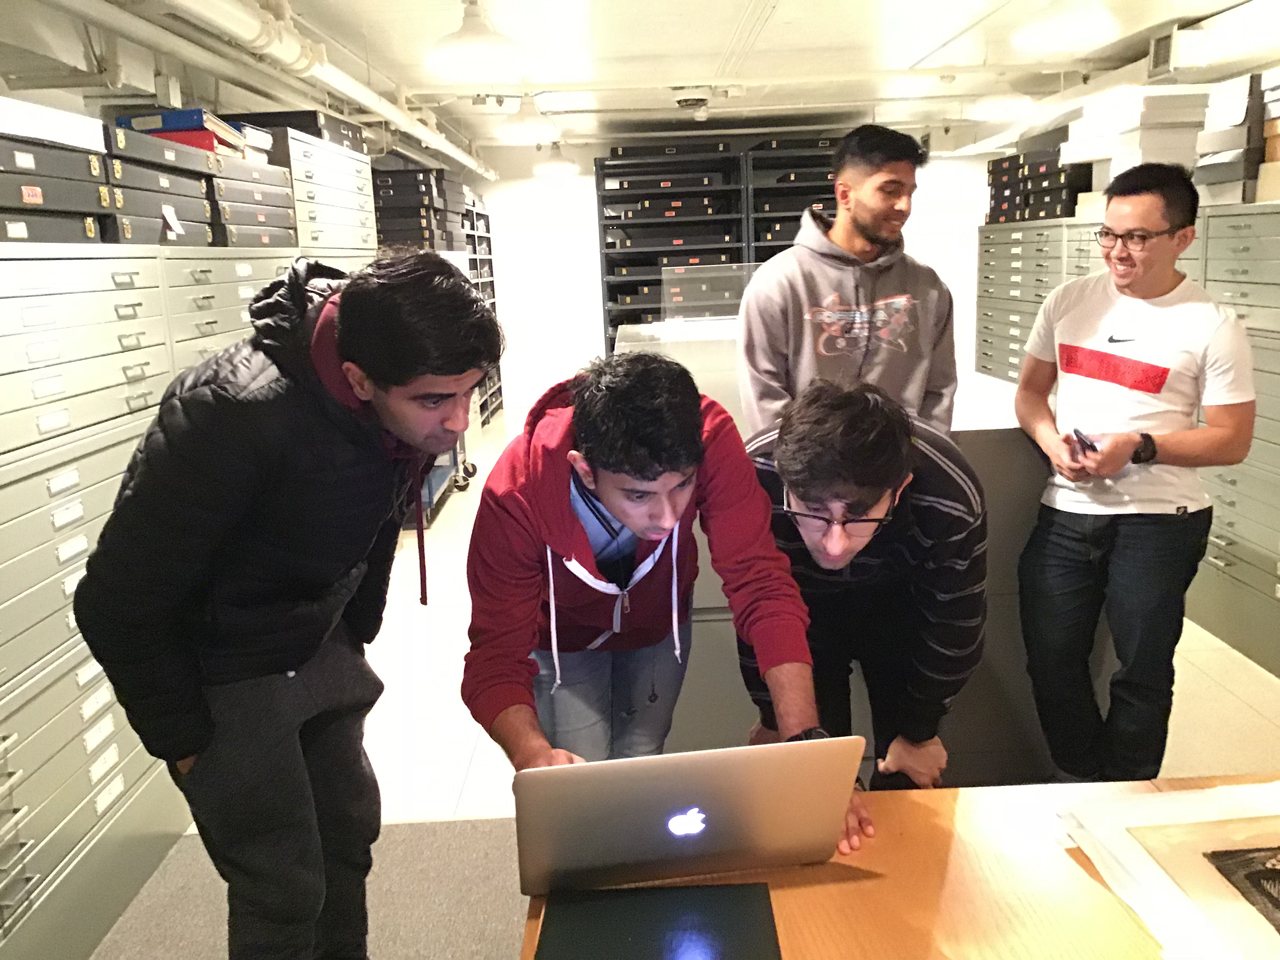 Engineering Students callibrating their device in the Paper Centre of McMaster Museum of Art